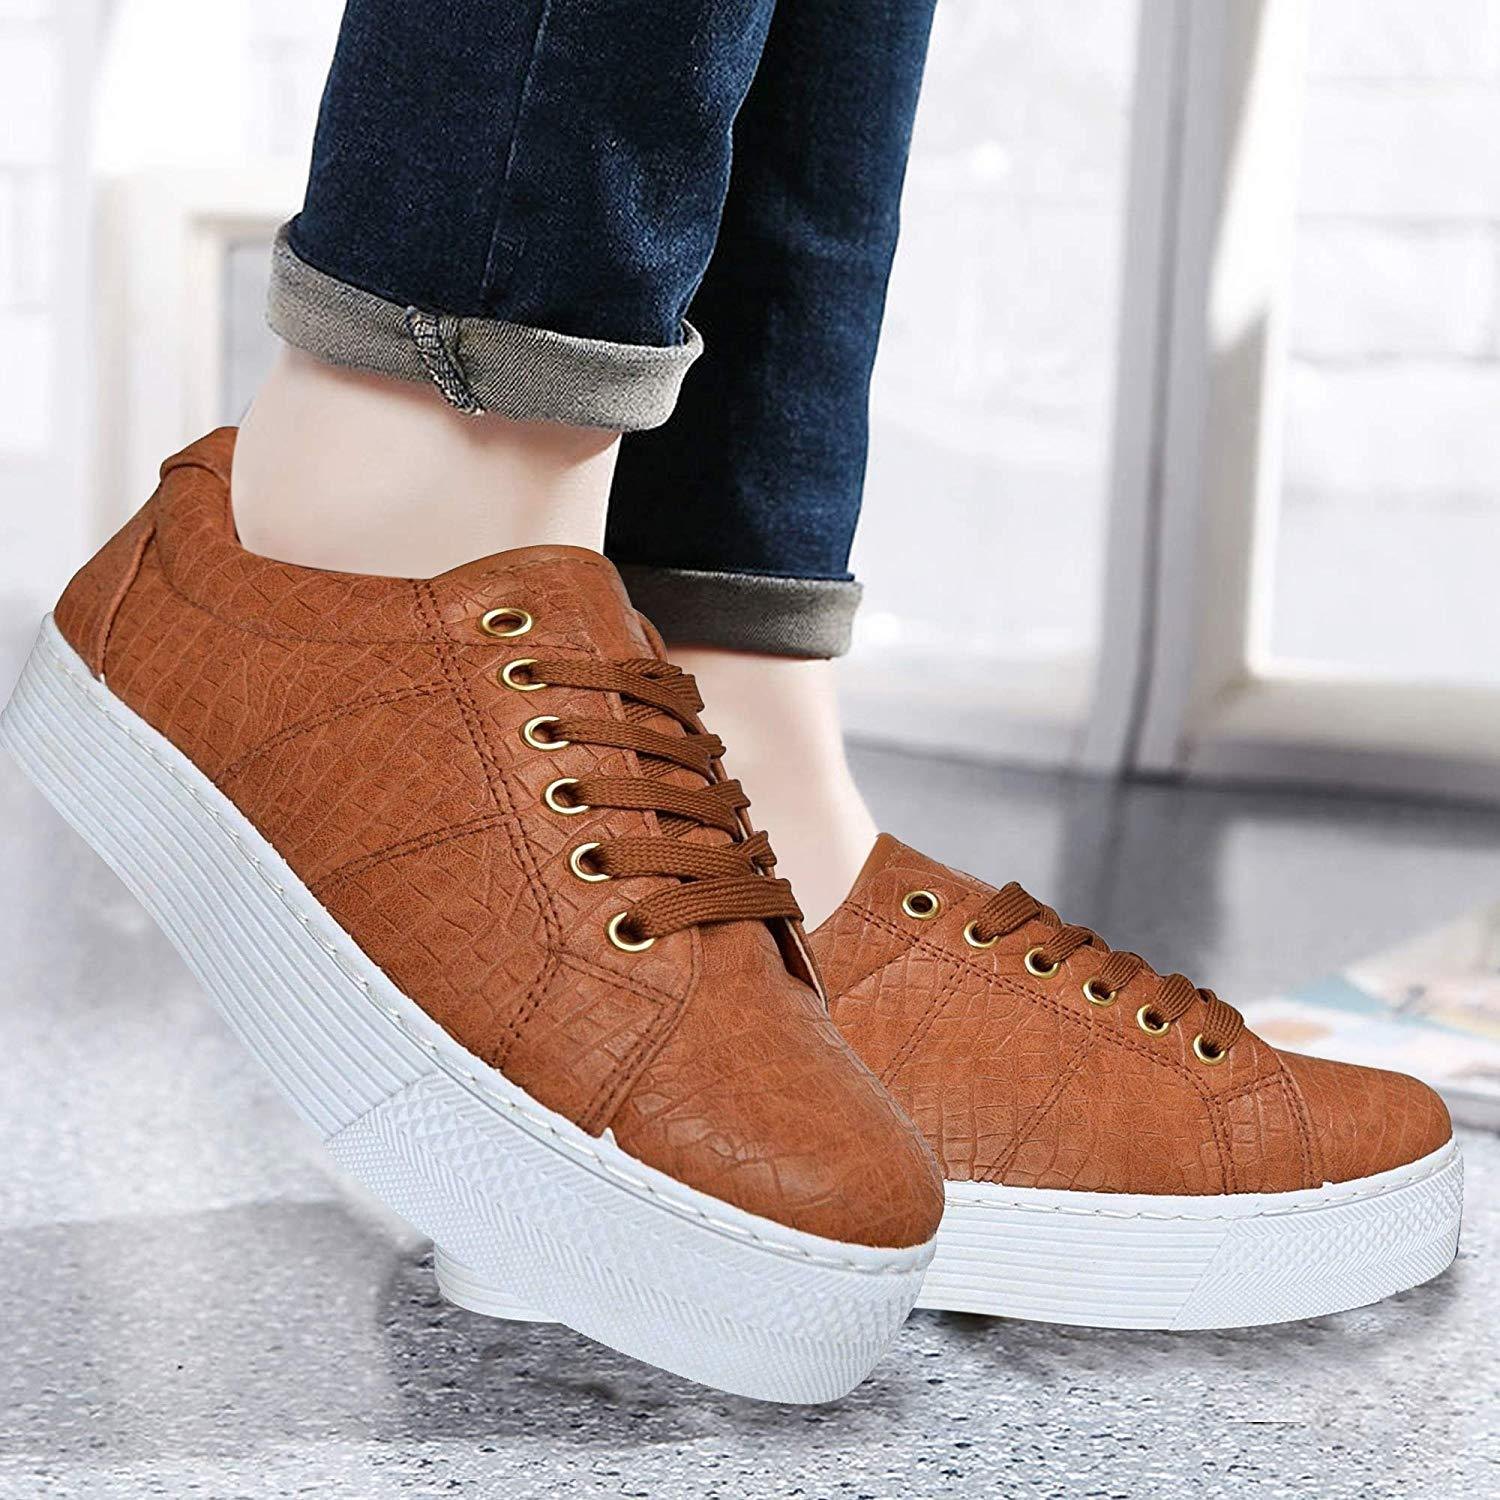 WOMENS FLAT WHITE LACE-UP TRAINERS PUMPS PLIMSOLLS CASUAL SKATER SHOES UK 3-8